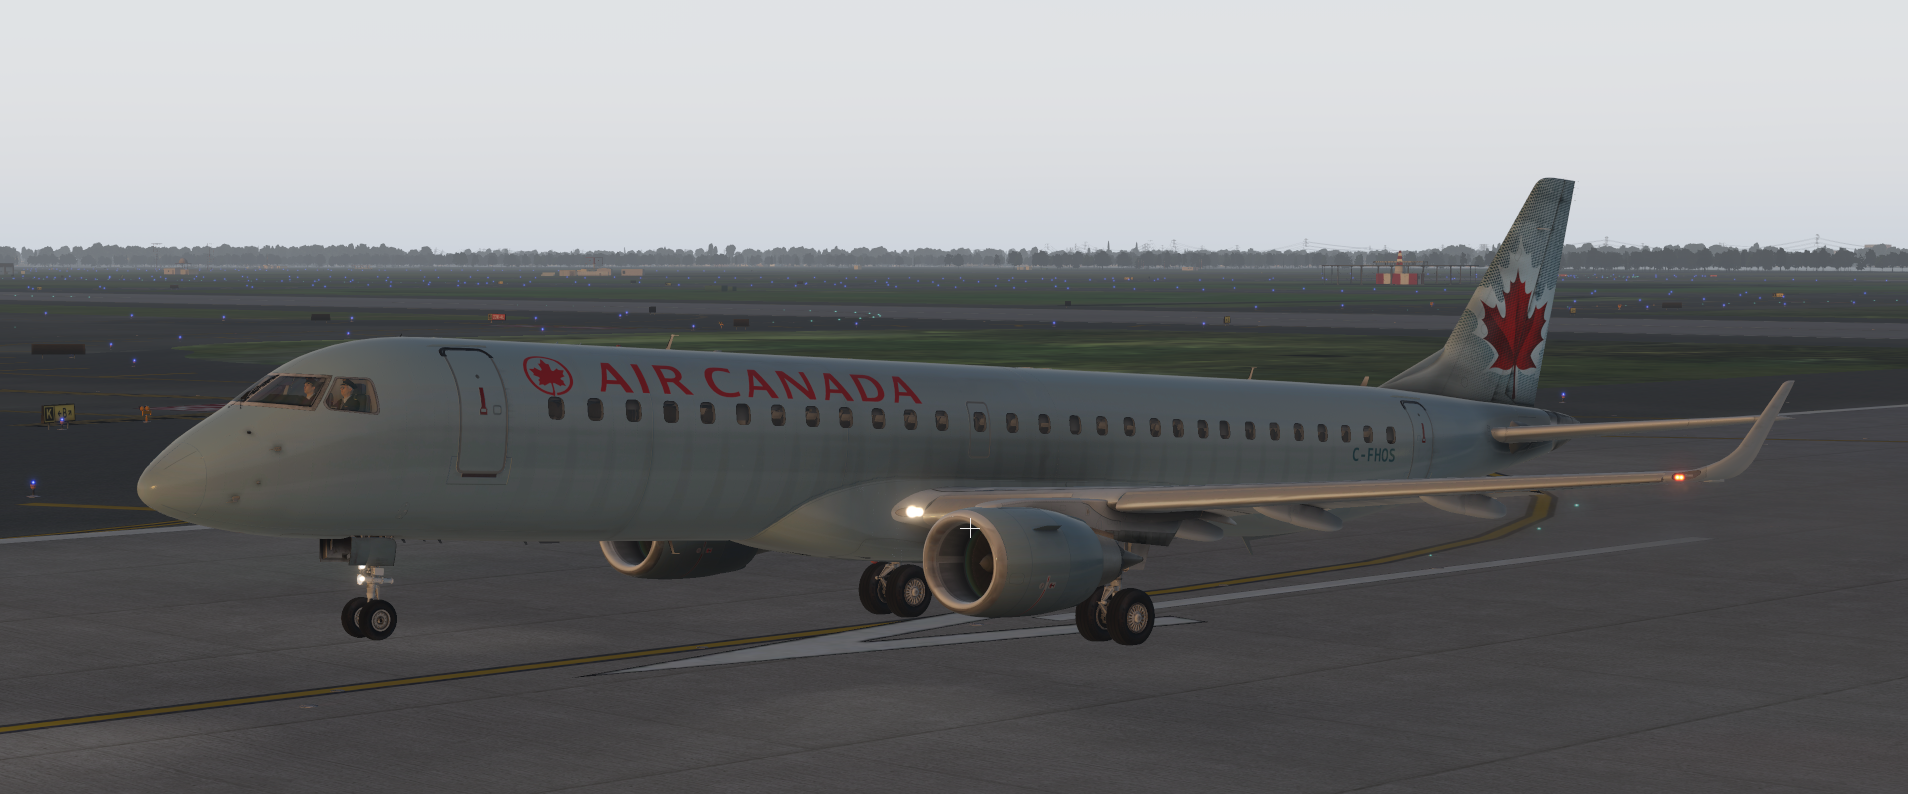 X-Crafts Embraer E-175/195 SimVRLabs Implementation